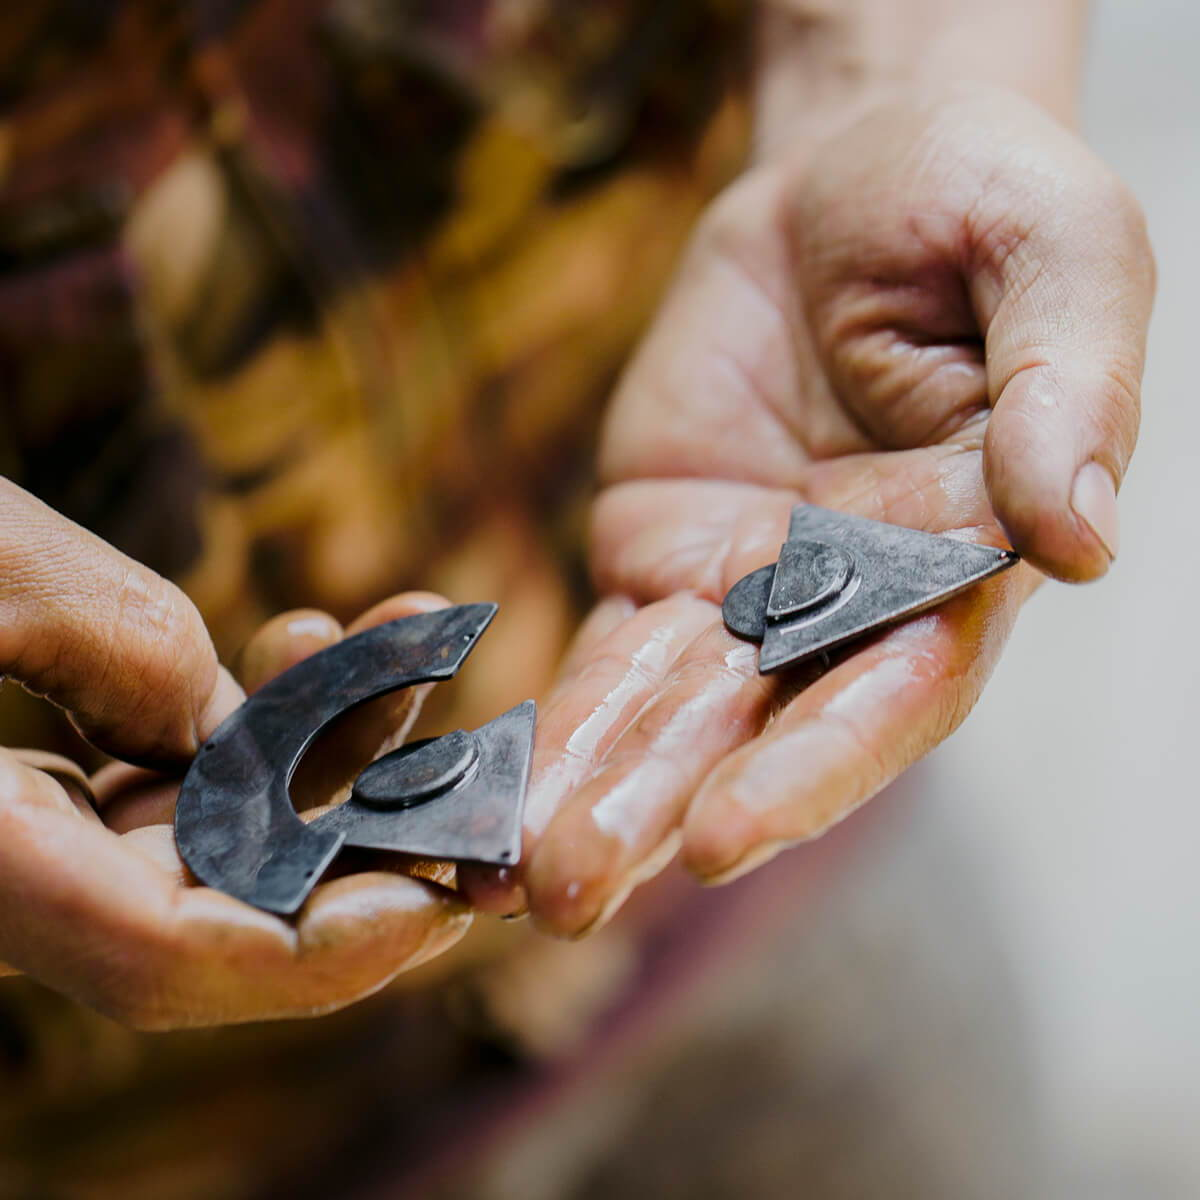 Hand-forged jewelry ethically made in Nepal